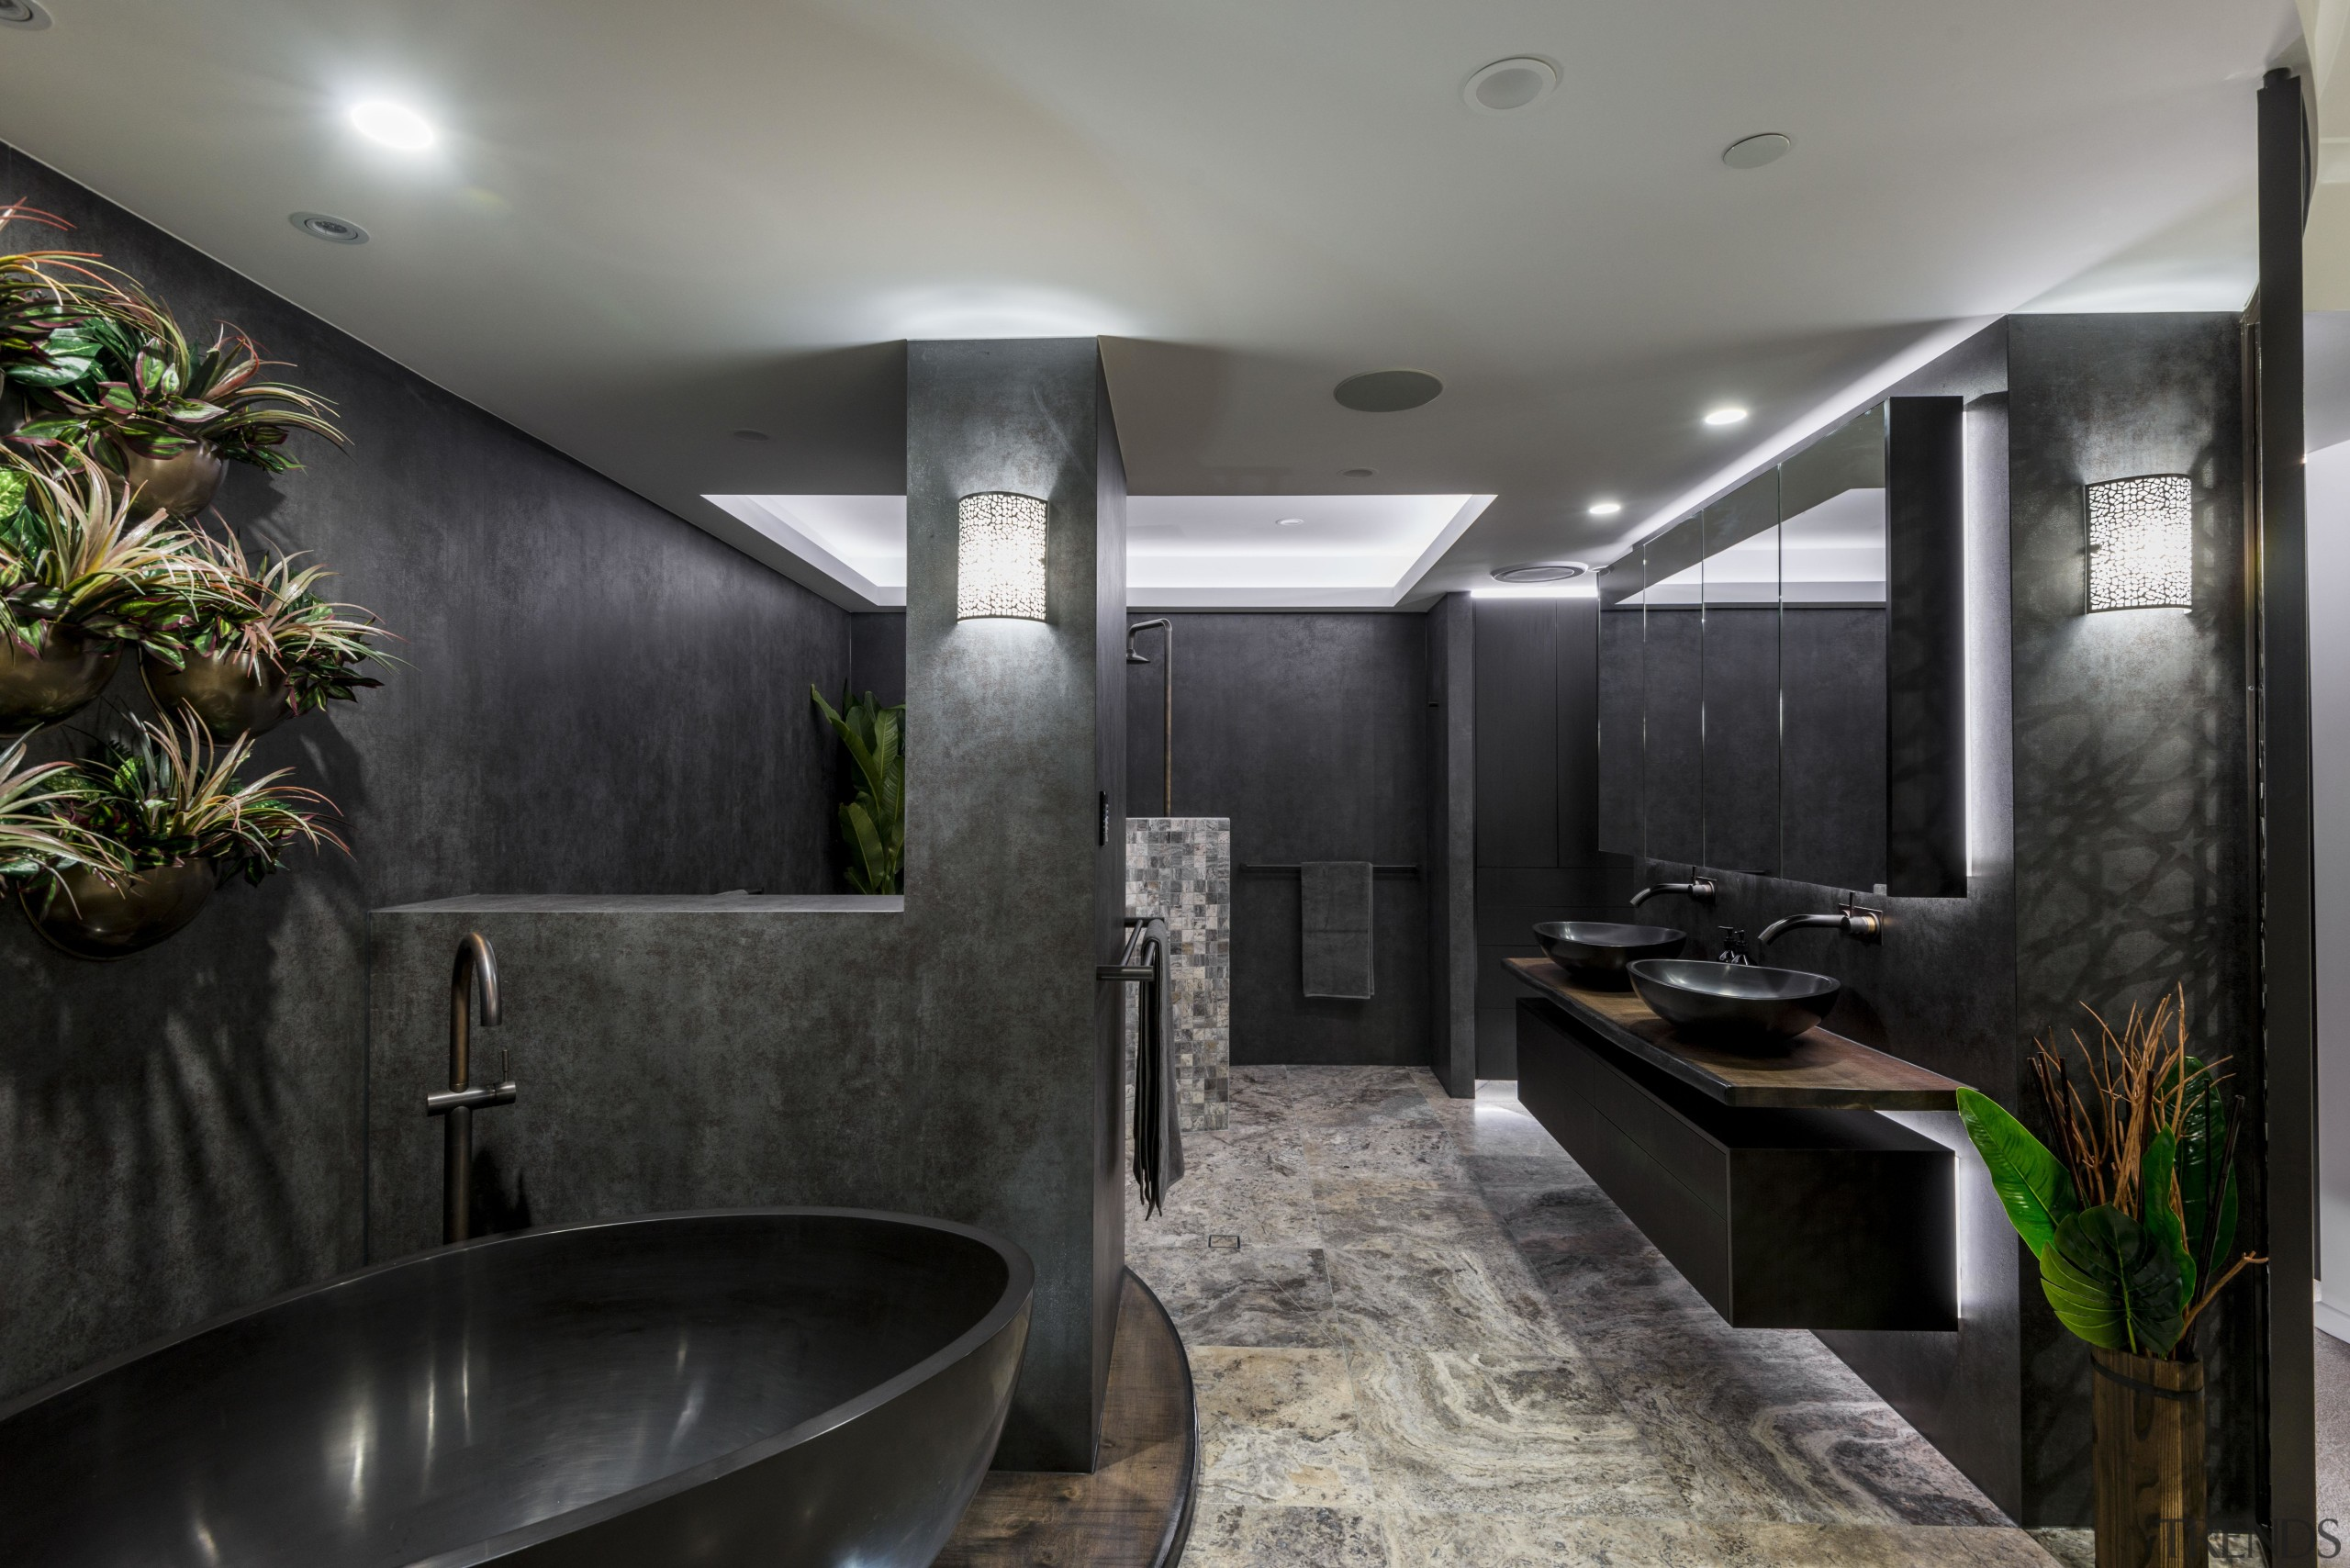 Read the full story architecture, bathroom, building, ceiling, countertop, floor, flooring, furniture, home, house, interior design, plumbing fixture, property, real estate, room, tile, black, gray